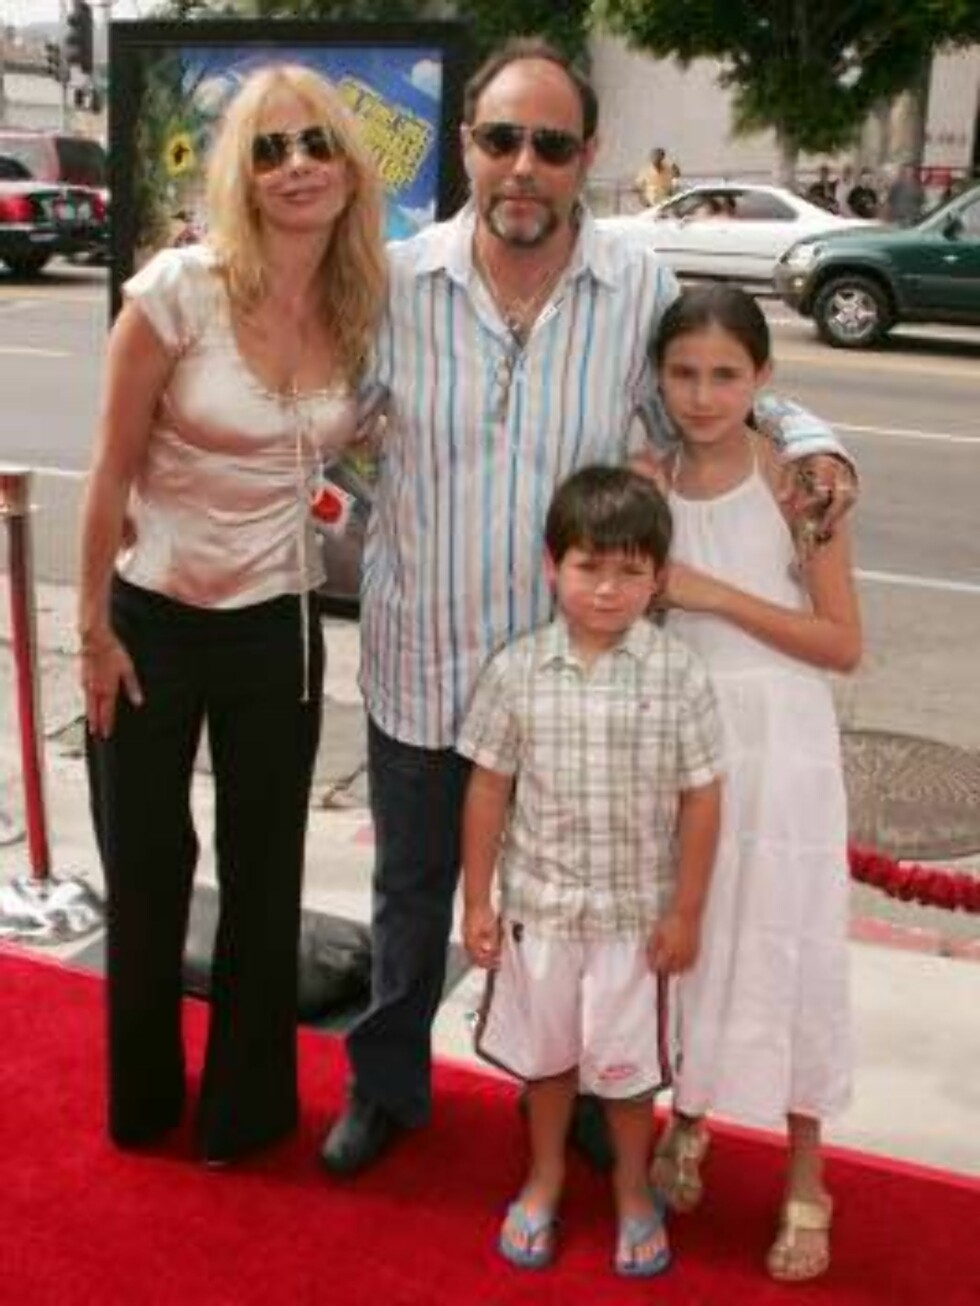 Barnyard Premiere, Cinerama Dome, Hollywood, California .   Pictured: Rosanna Arquette  Photo: Juan Rico/Fame Pictures  Code 4002  COPYRIGHT STELLA PICTURES Foto: Stella Pictures